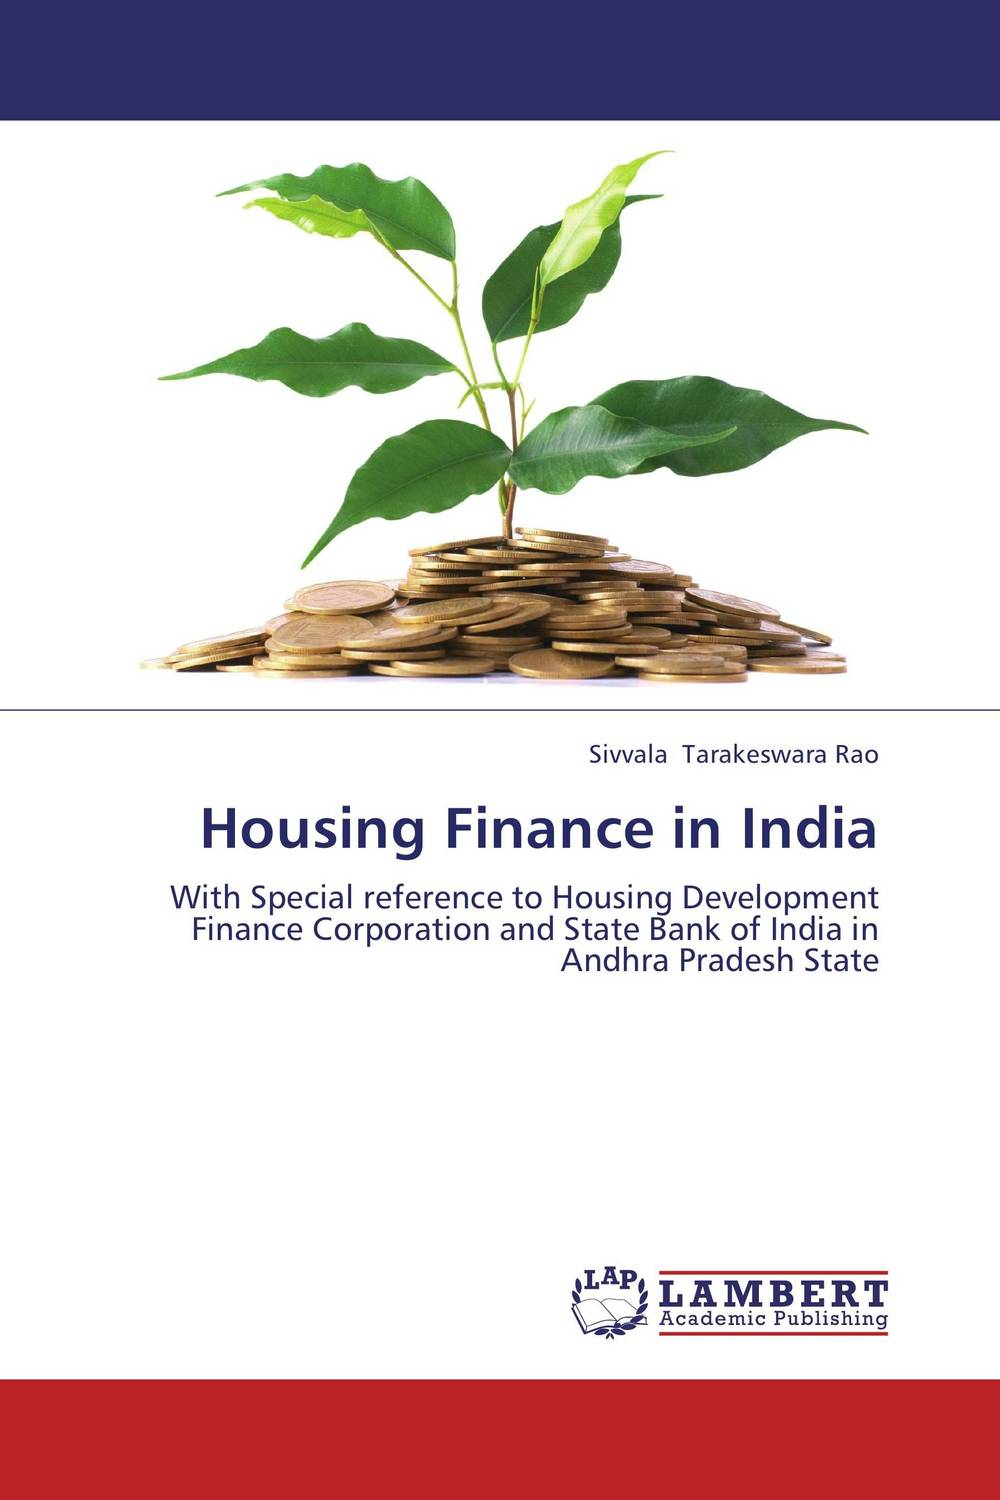 Housing Finance in India jaynal ud din ahmed and mohd abdul rashid institutional finance for micro and small entreprises in india